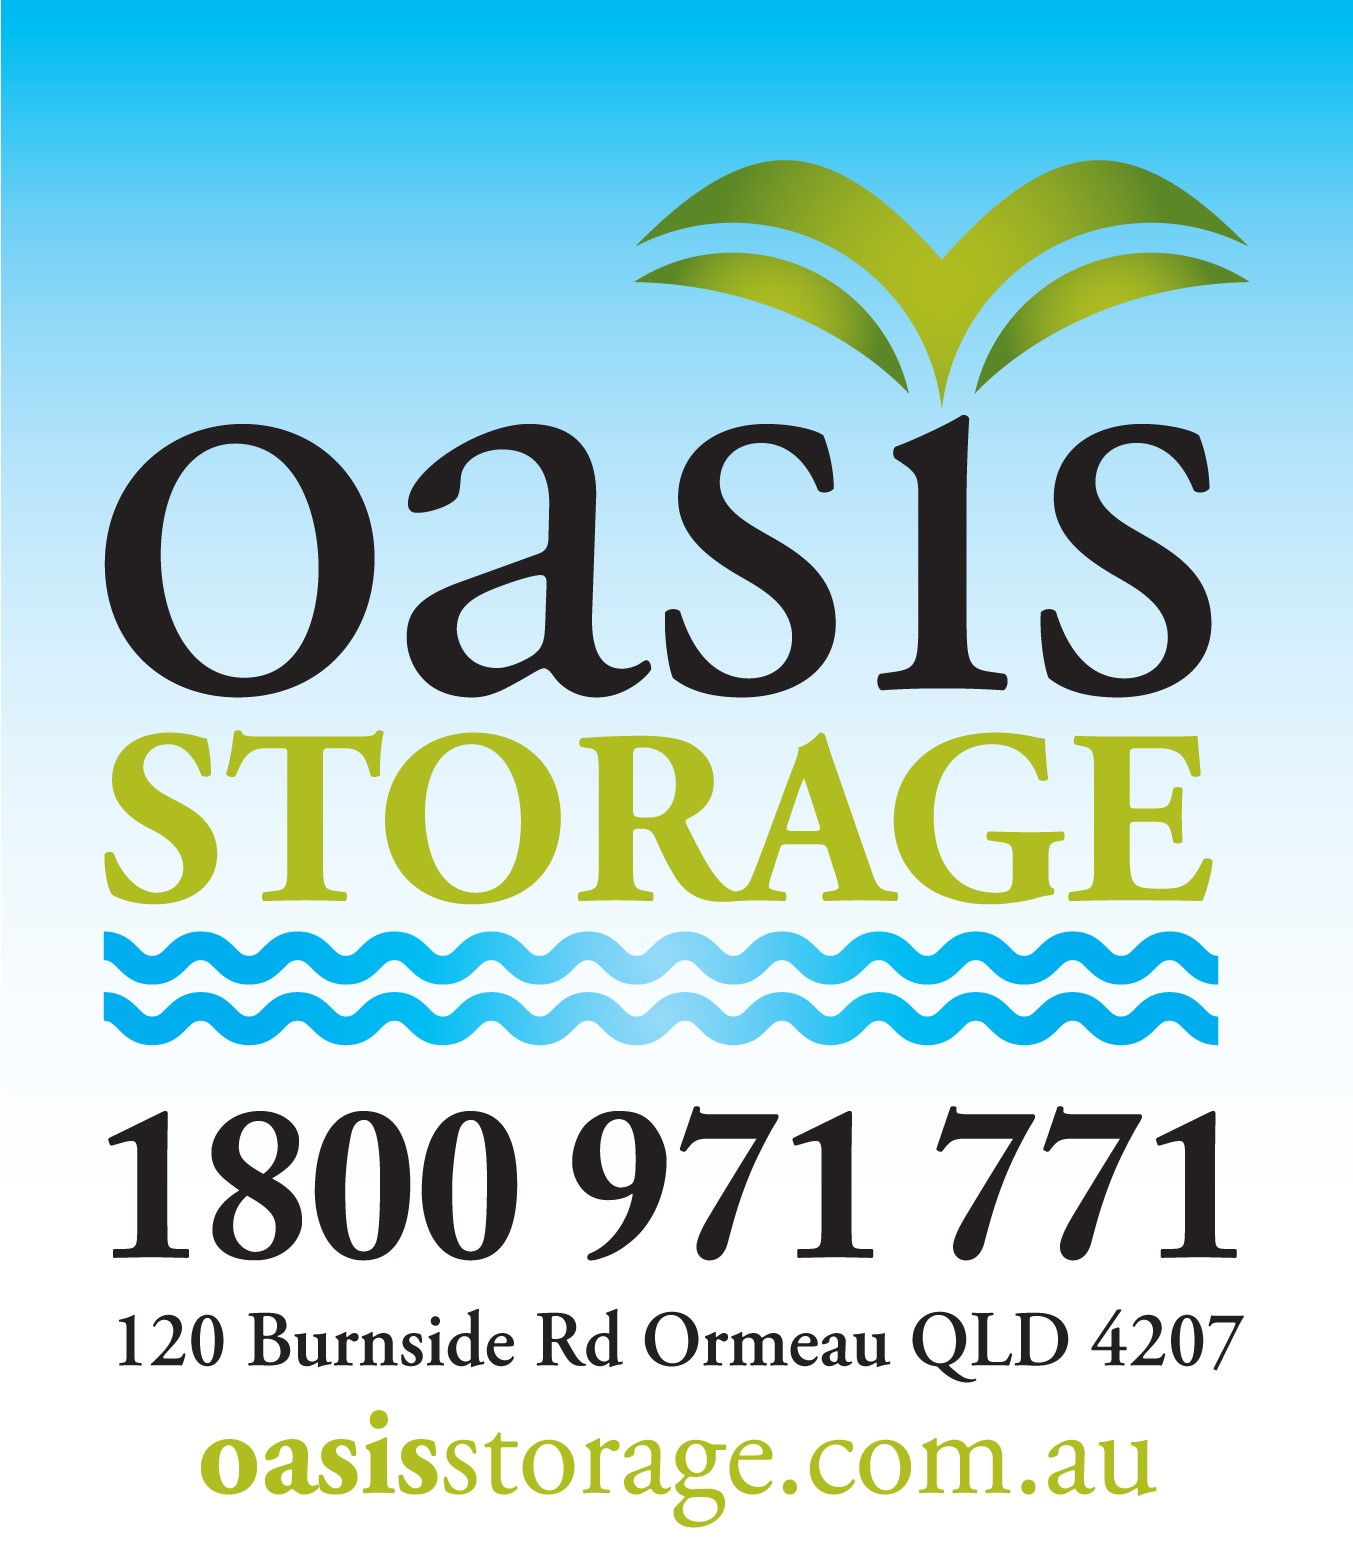 Oasis Storage Pty Ltd